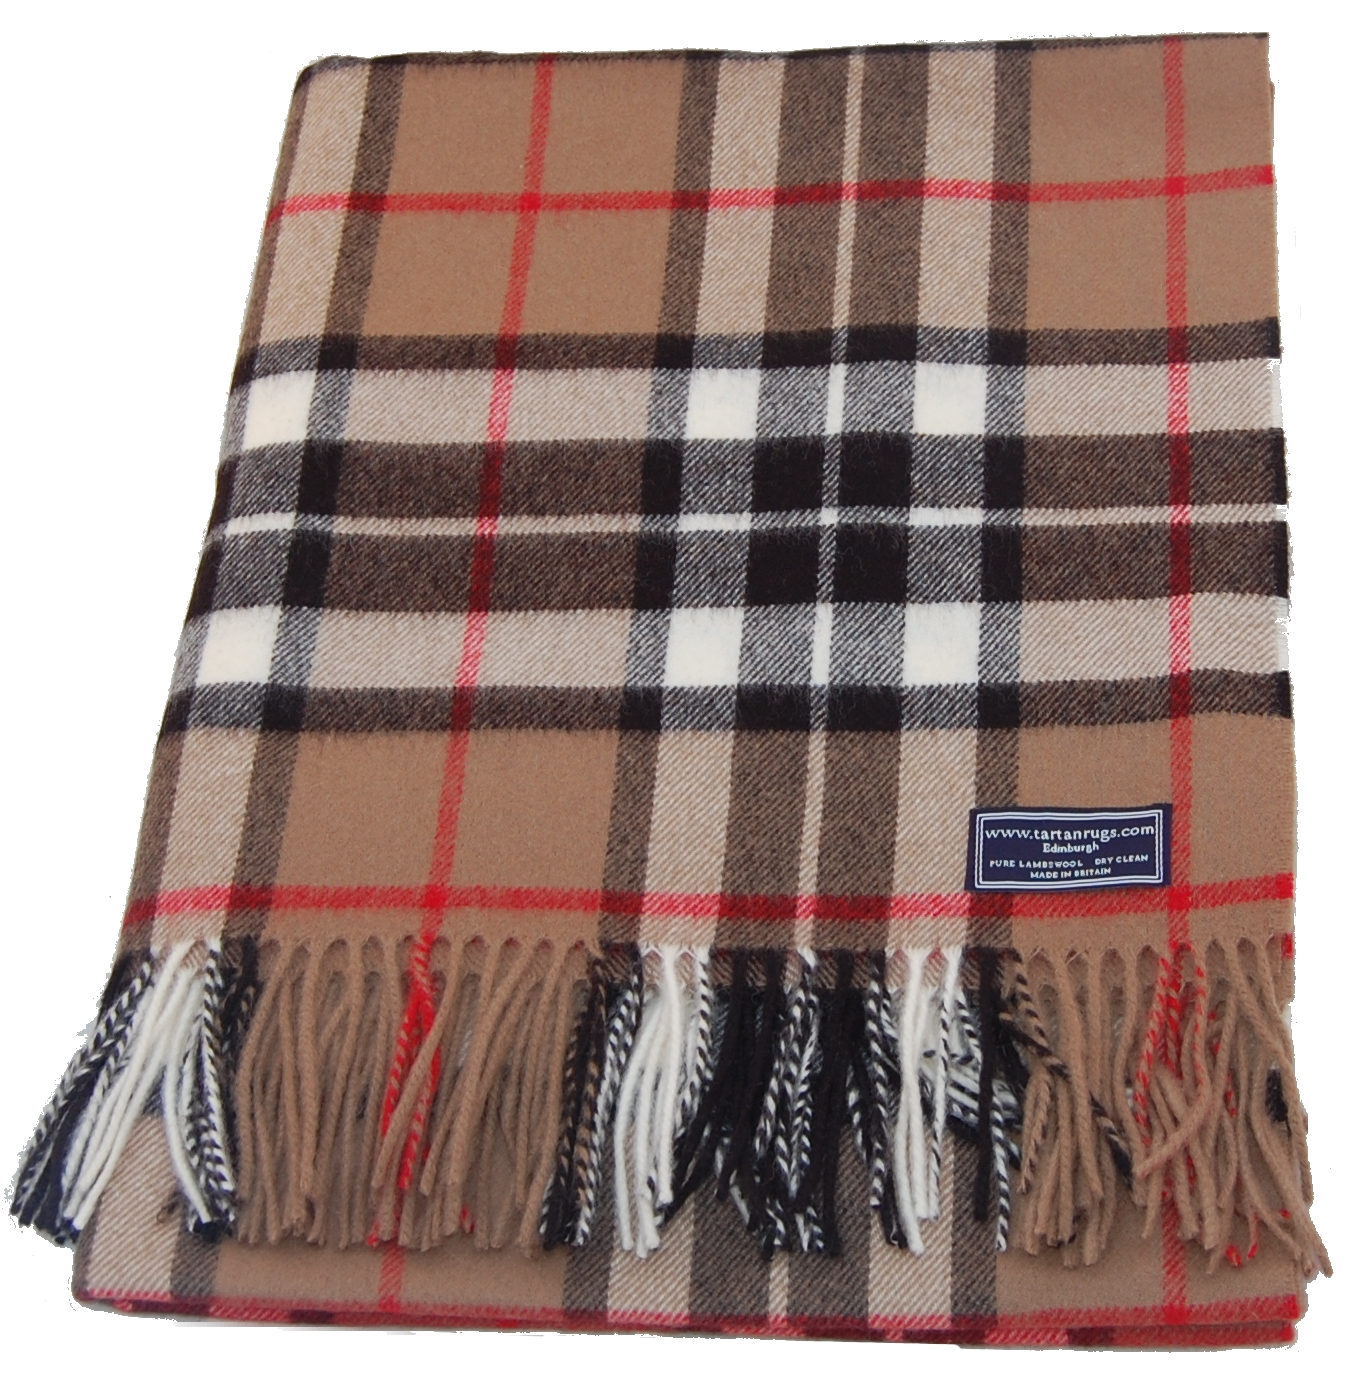 camel thomson tartan lambswool travel rug. Black Bedroom Furniture Sets. Home Design Ideas